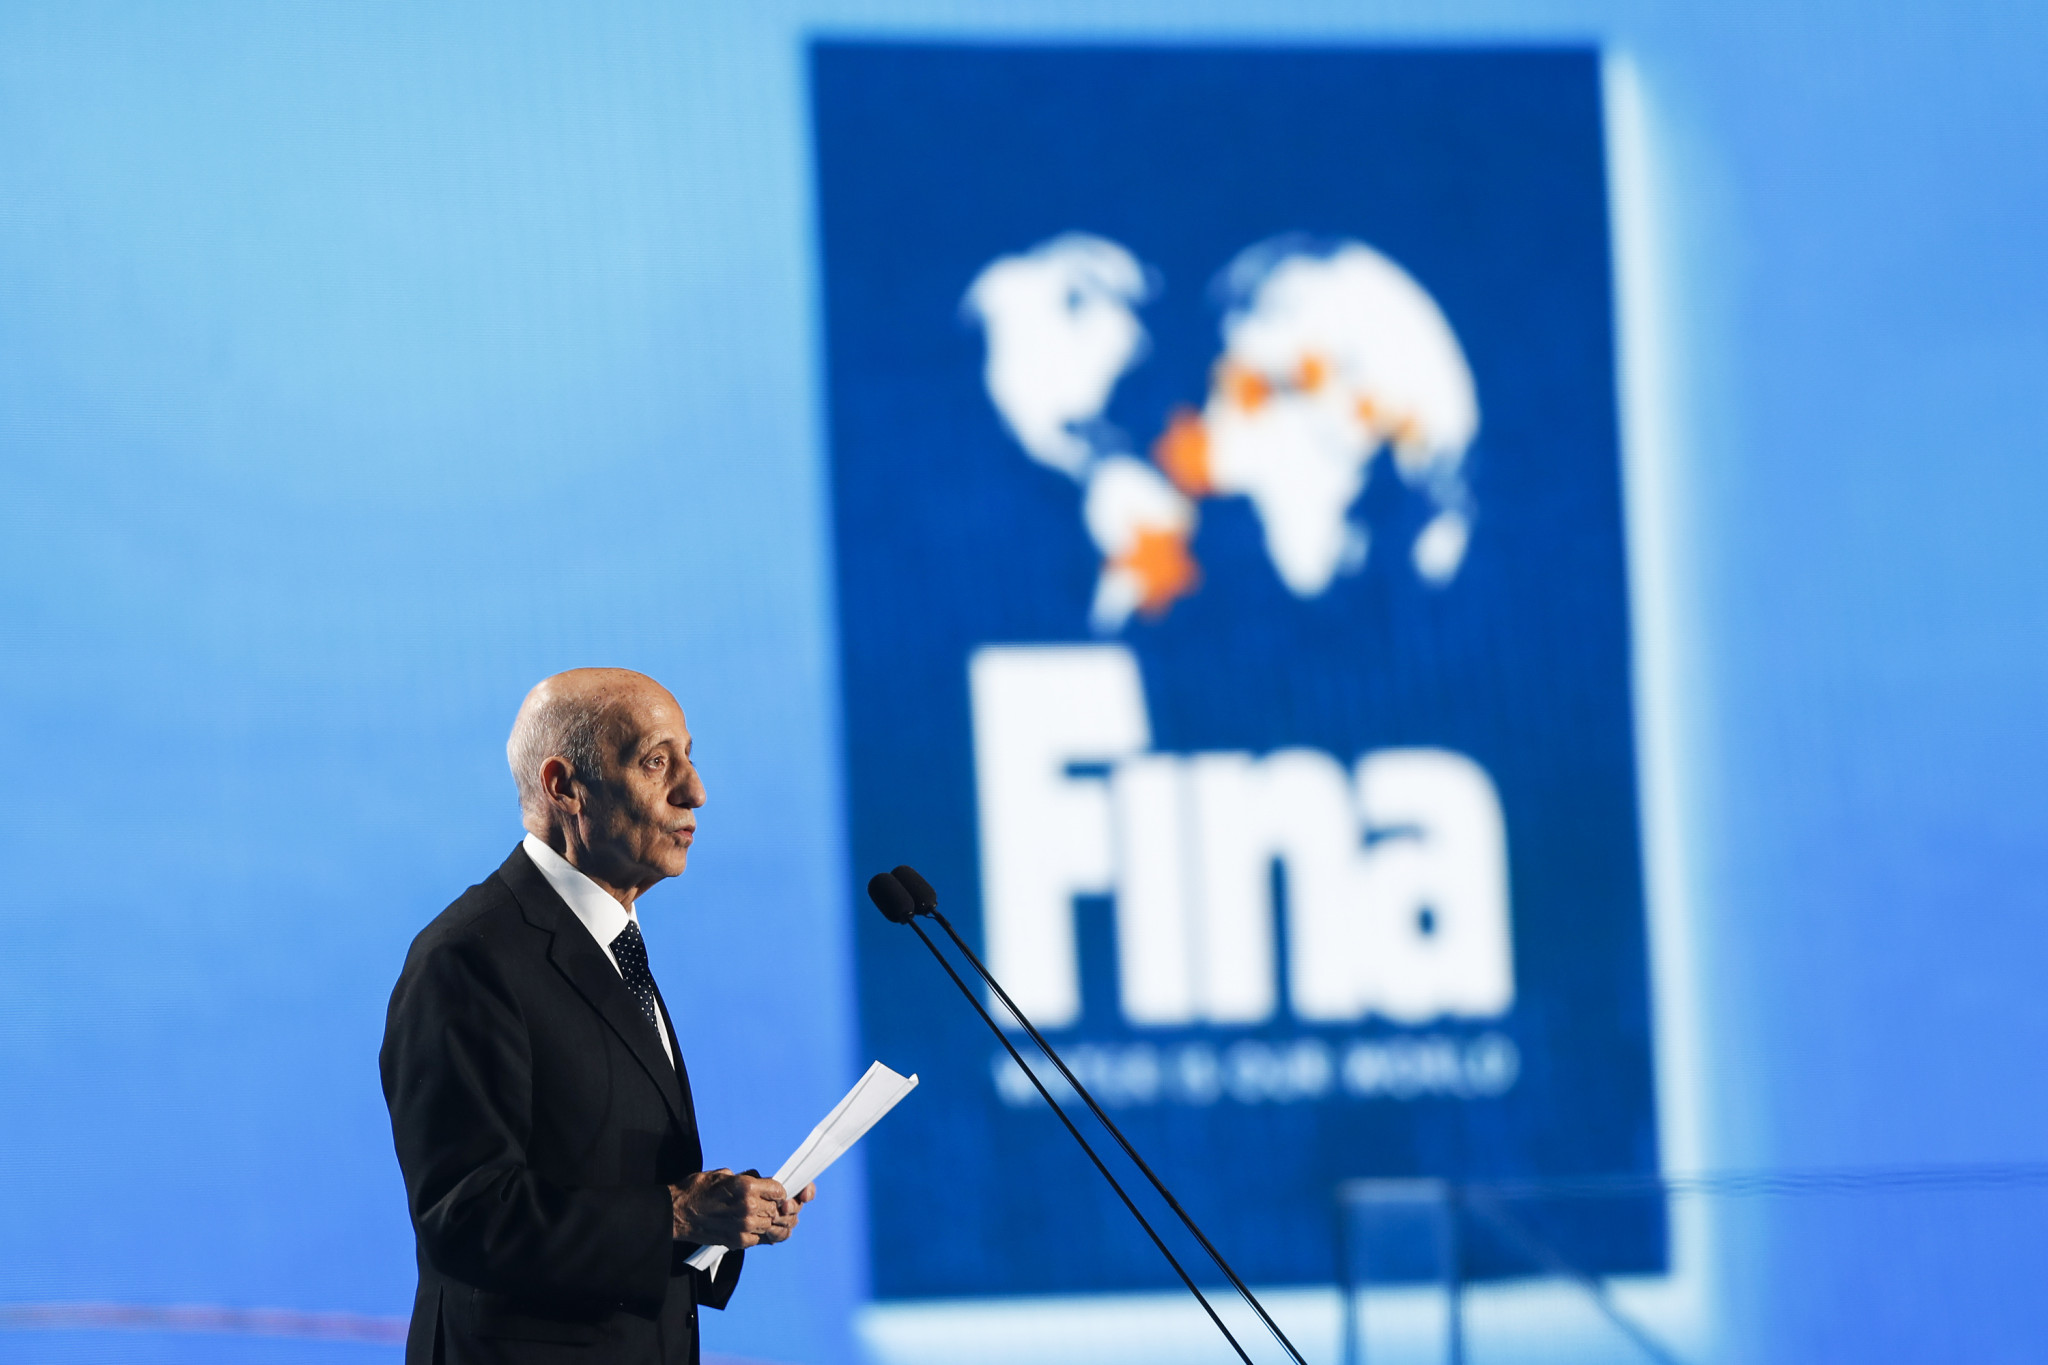 FINA reiterate that athletes who compete at independent events will not face bans amid dispute with ISL